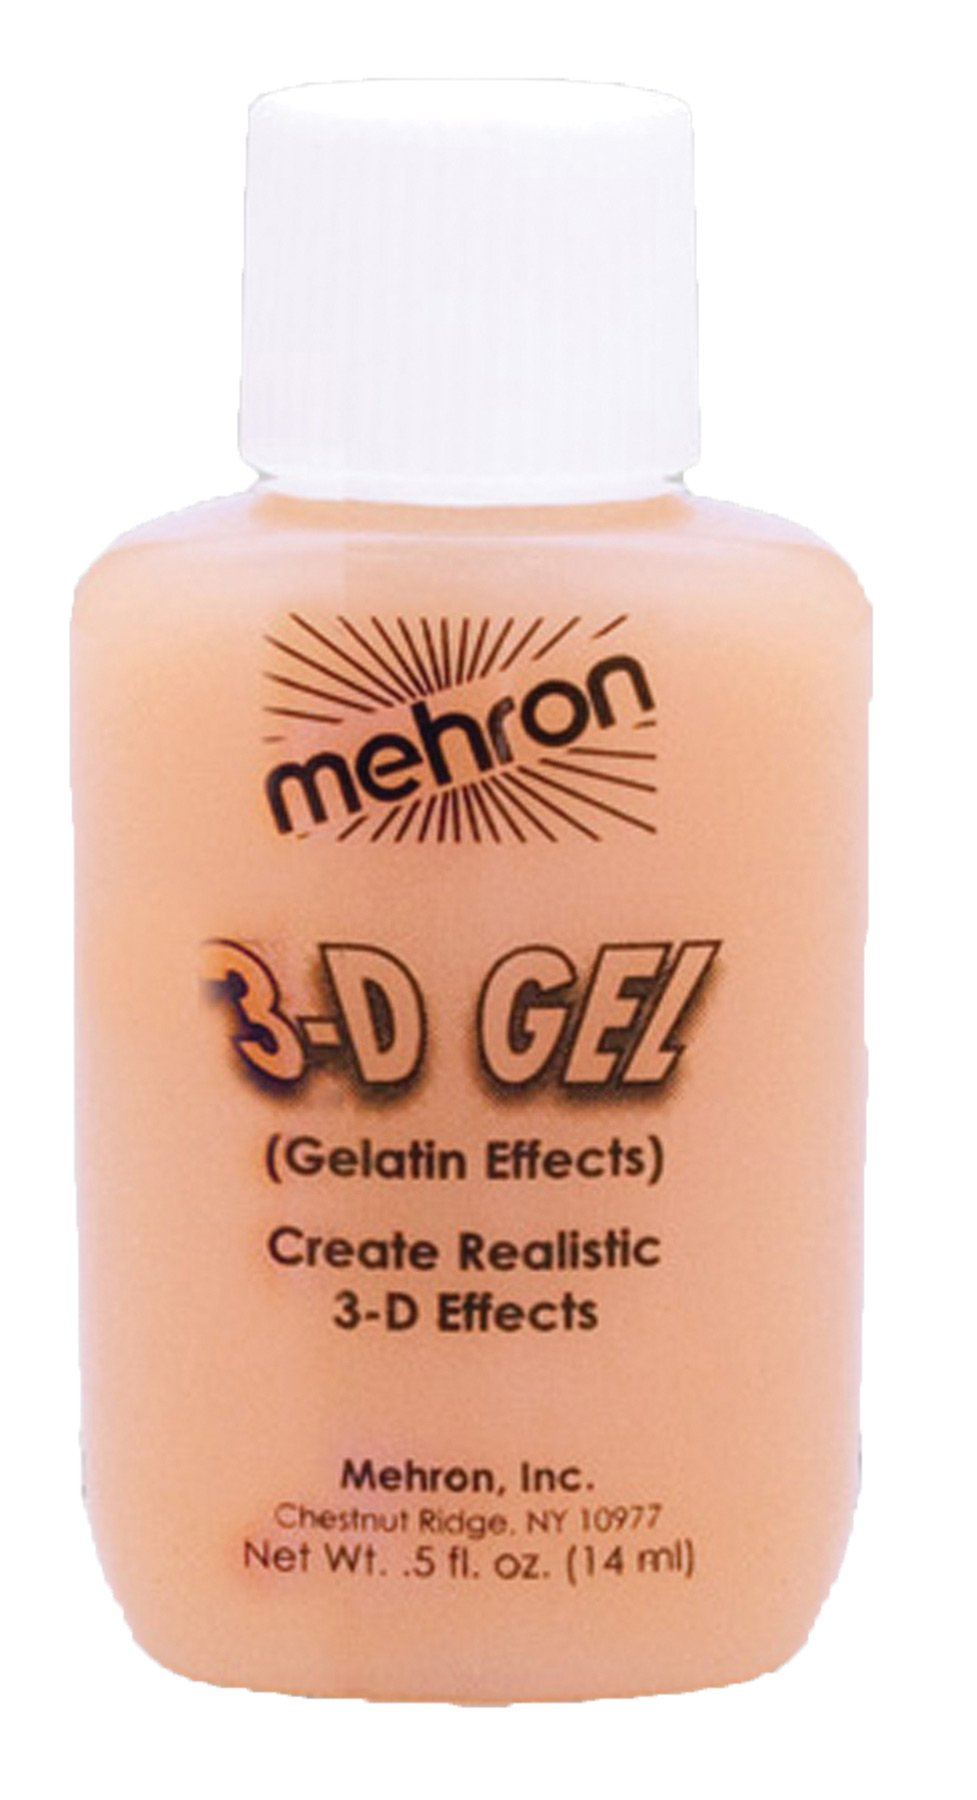 3-D Gel Gelatin Effects-Flesh